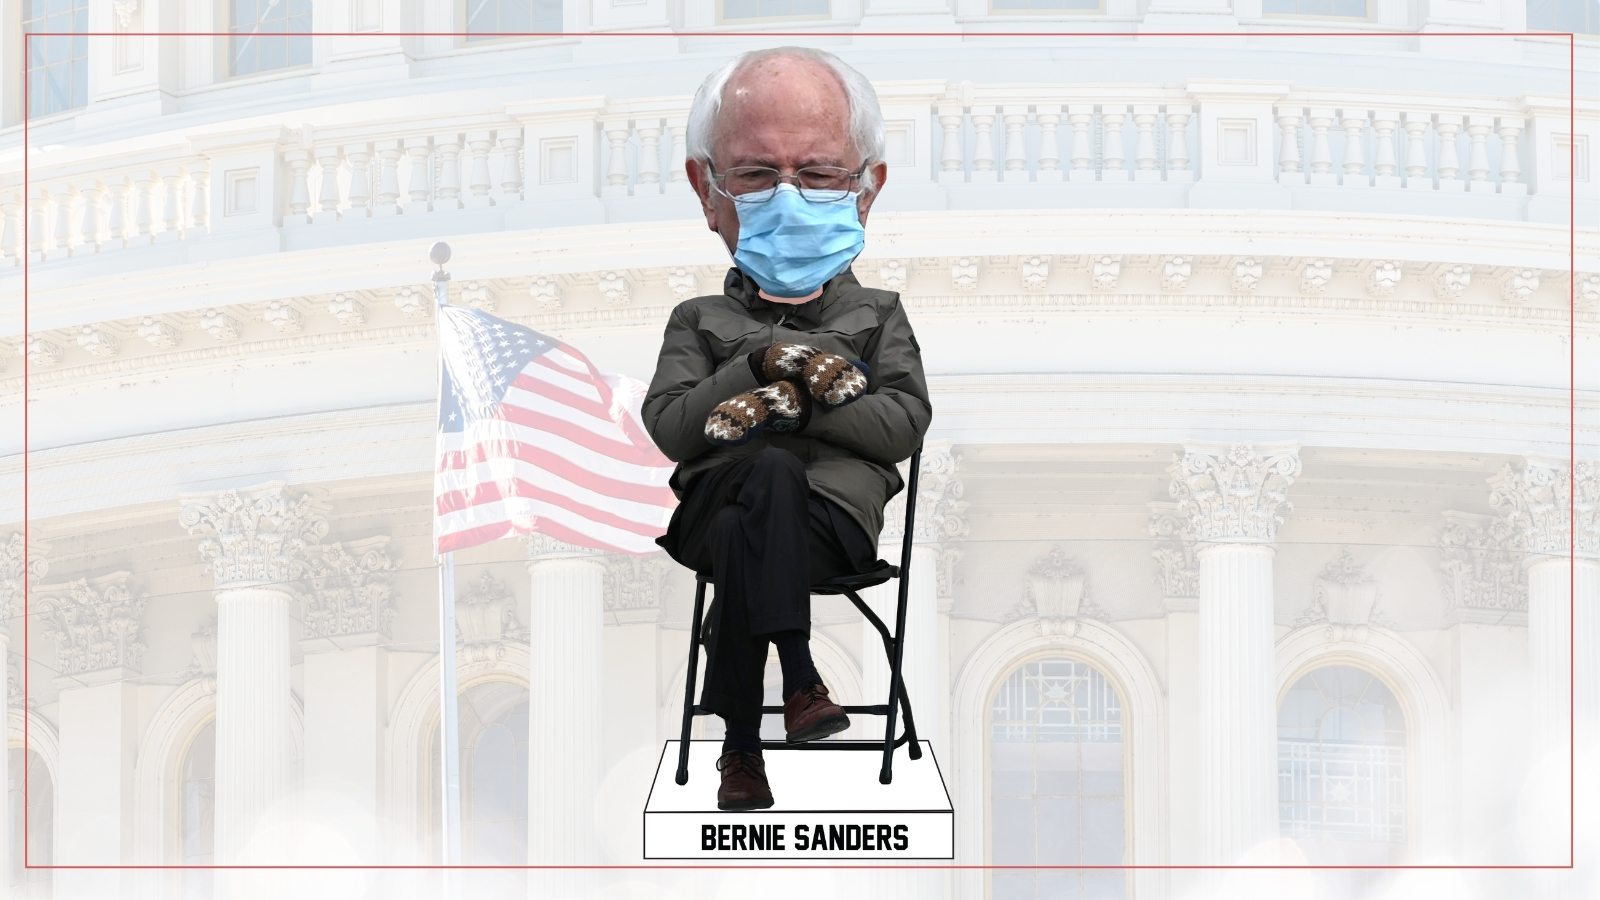 Bernie Sanders Inauguration Day bobblehead unveiled